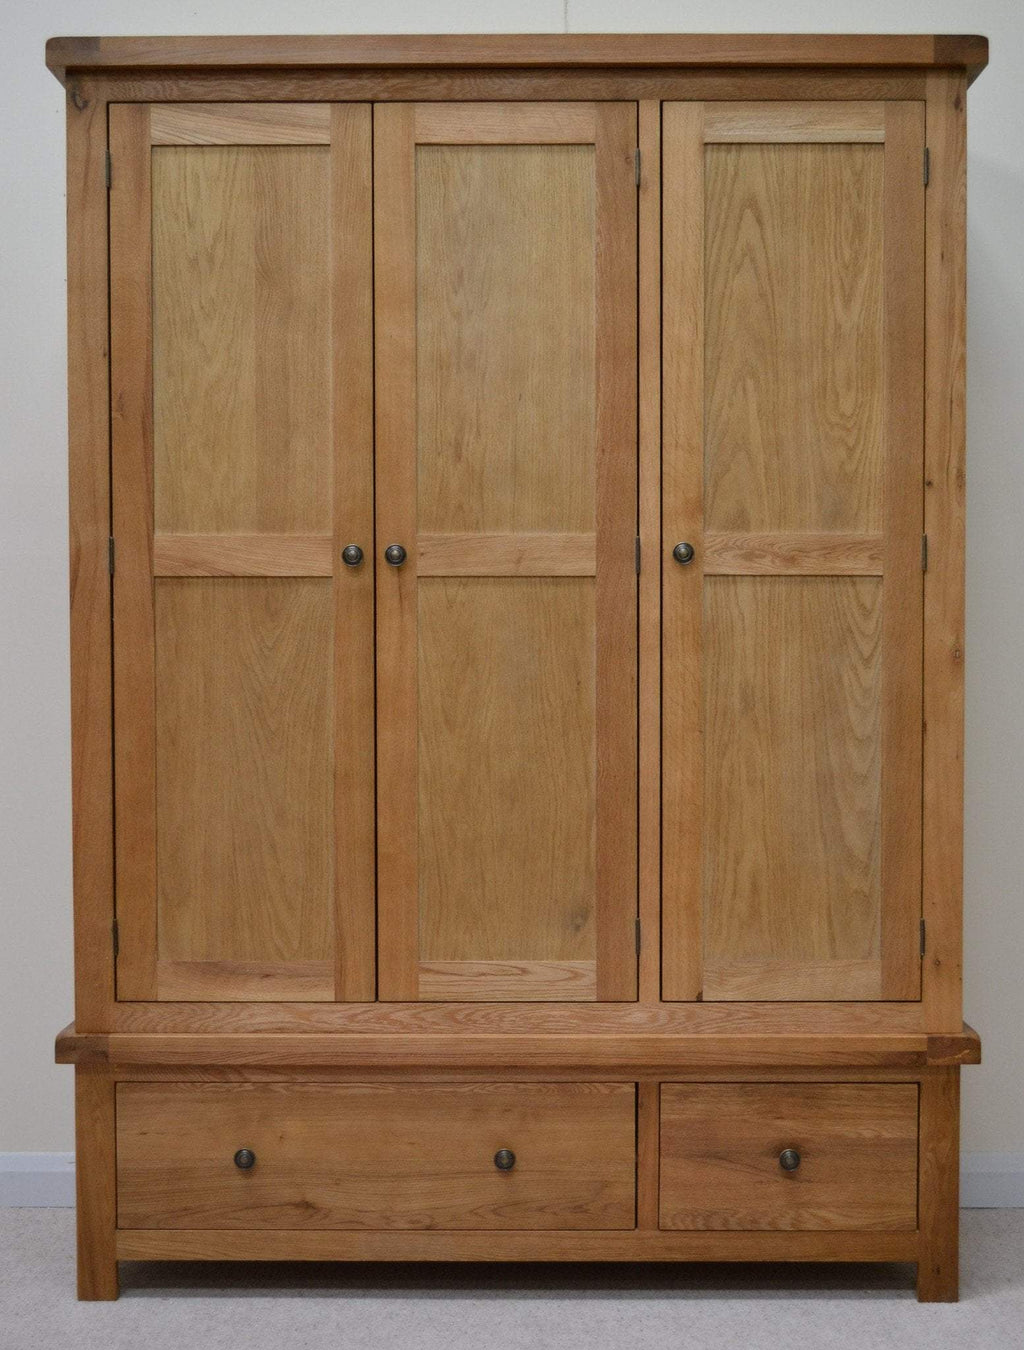 Dorset Oak Triple Wardrobe with Storage Drawers - Oak Village